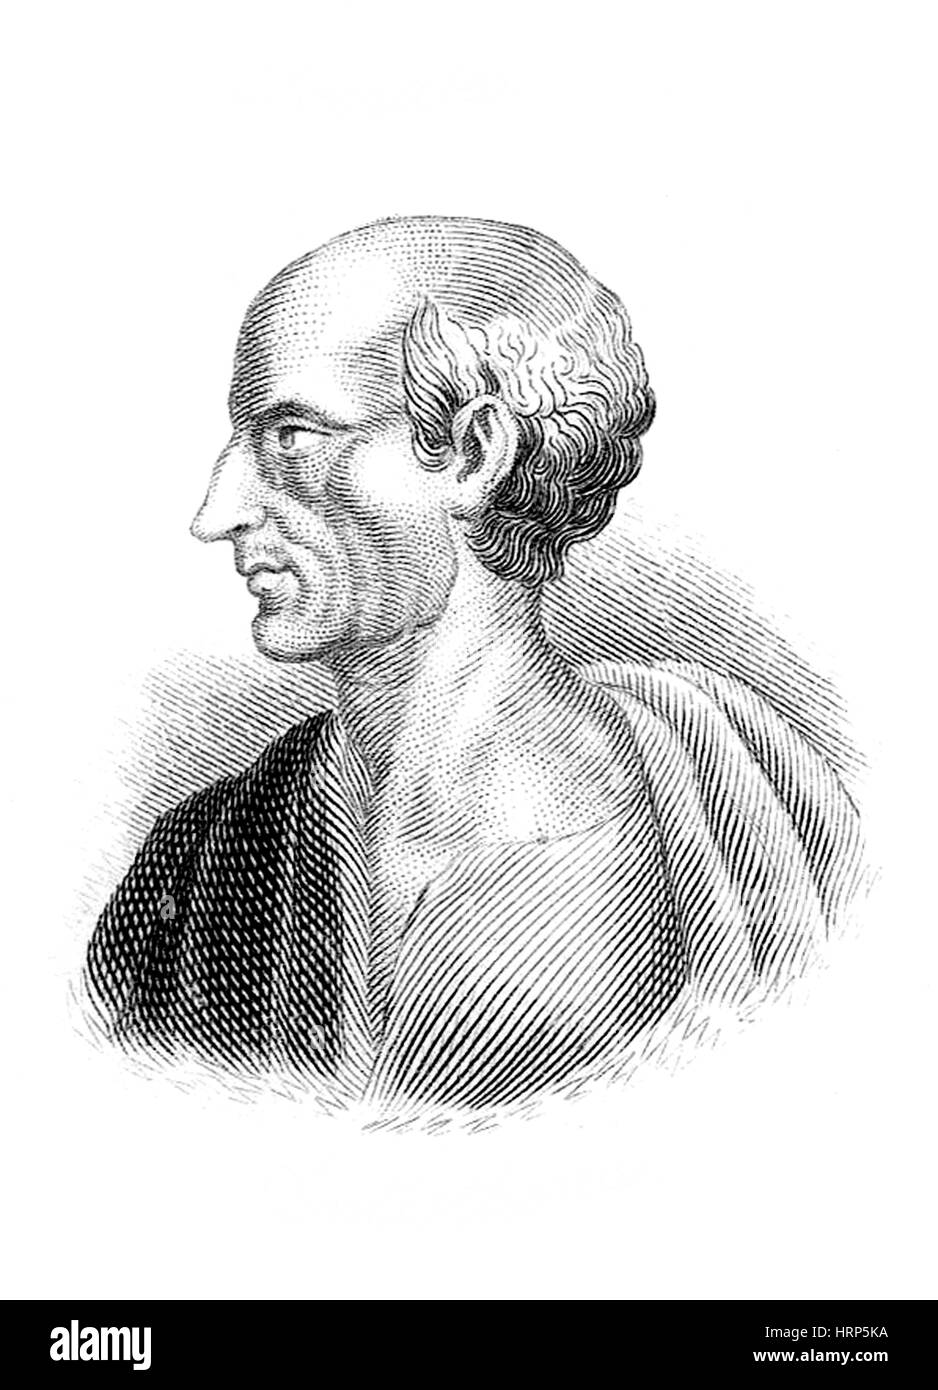 Antisthenes, Ancient Greek Philosopher - Stock Image